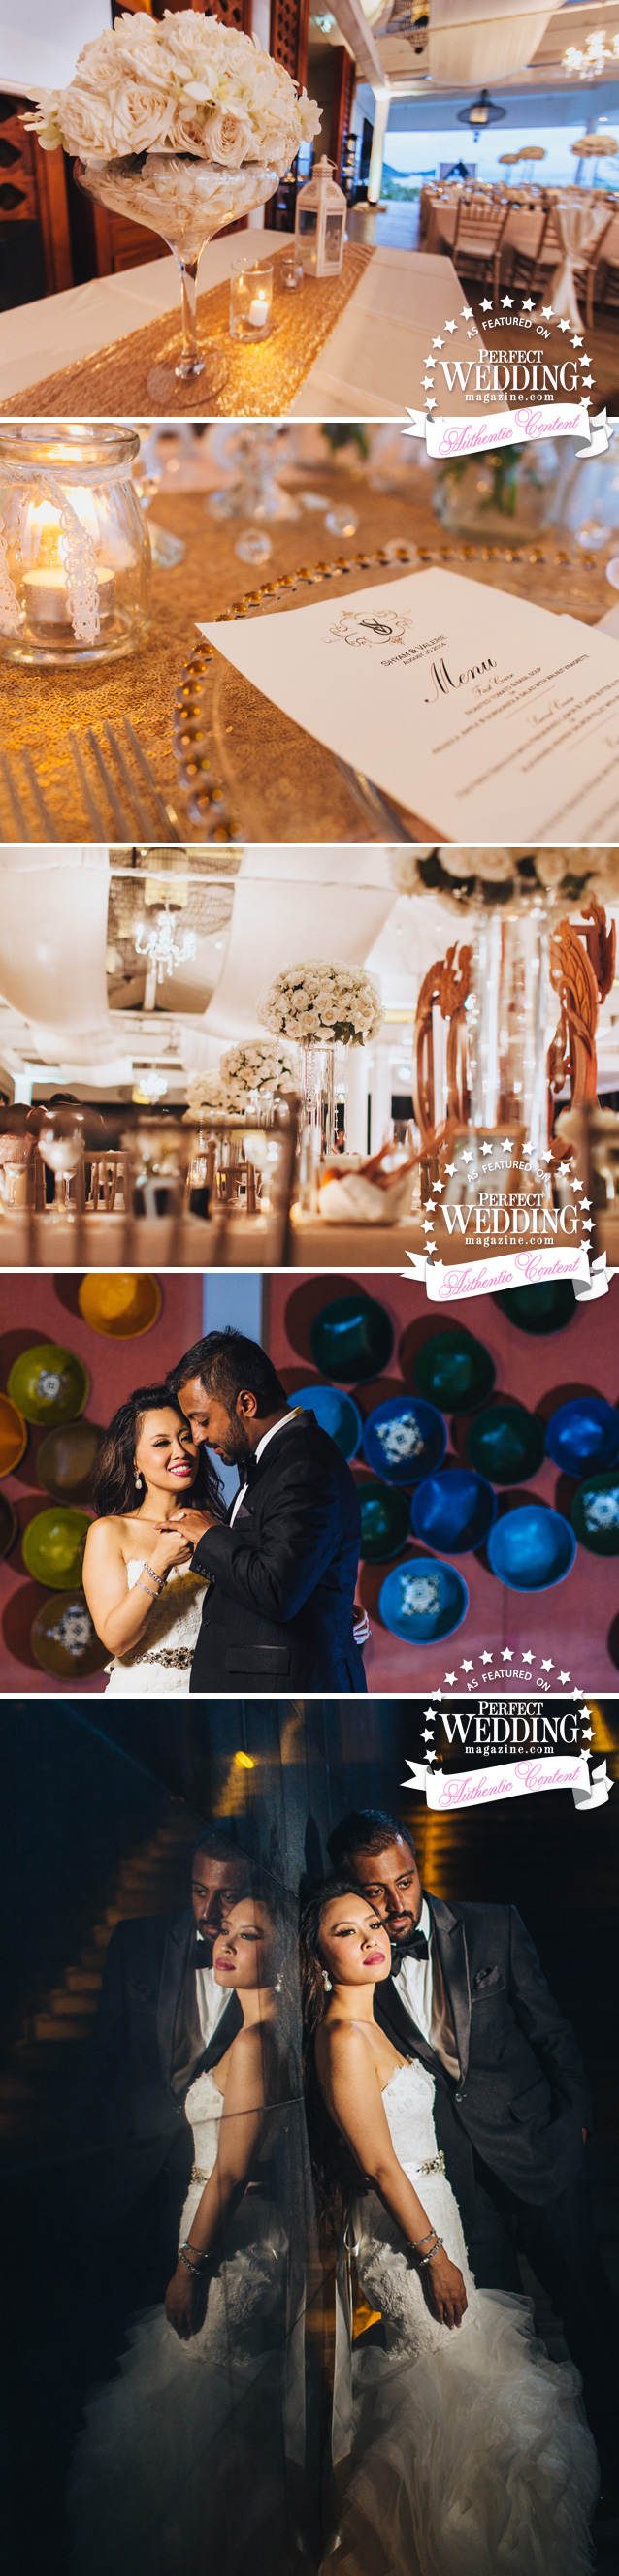 Liam Collard, Luxury Weddings in Thailand, Samui Intercontinental, Destination Weddings, Perfect Love, Perfect Wedding Magazine, Perfect Wedding Magazine Blog, Perfect Wedding Blog